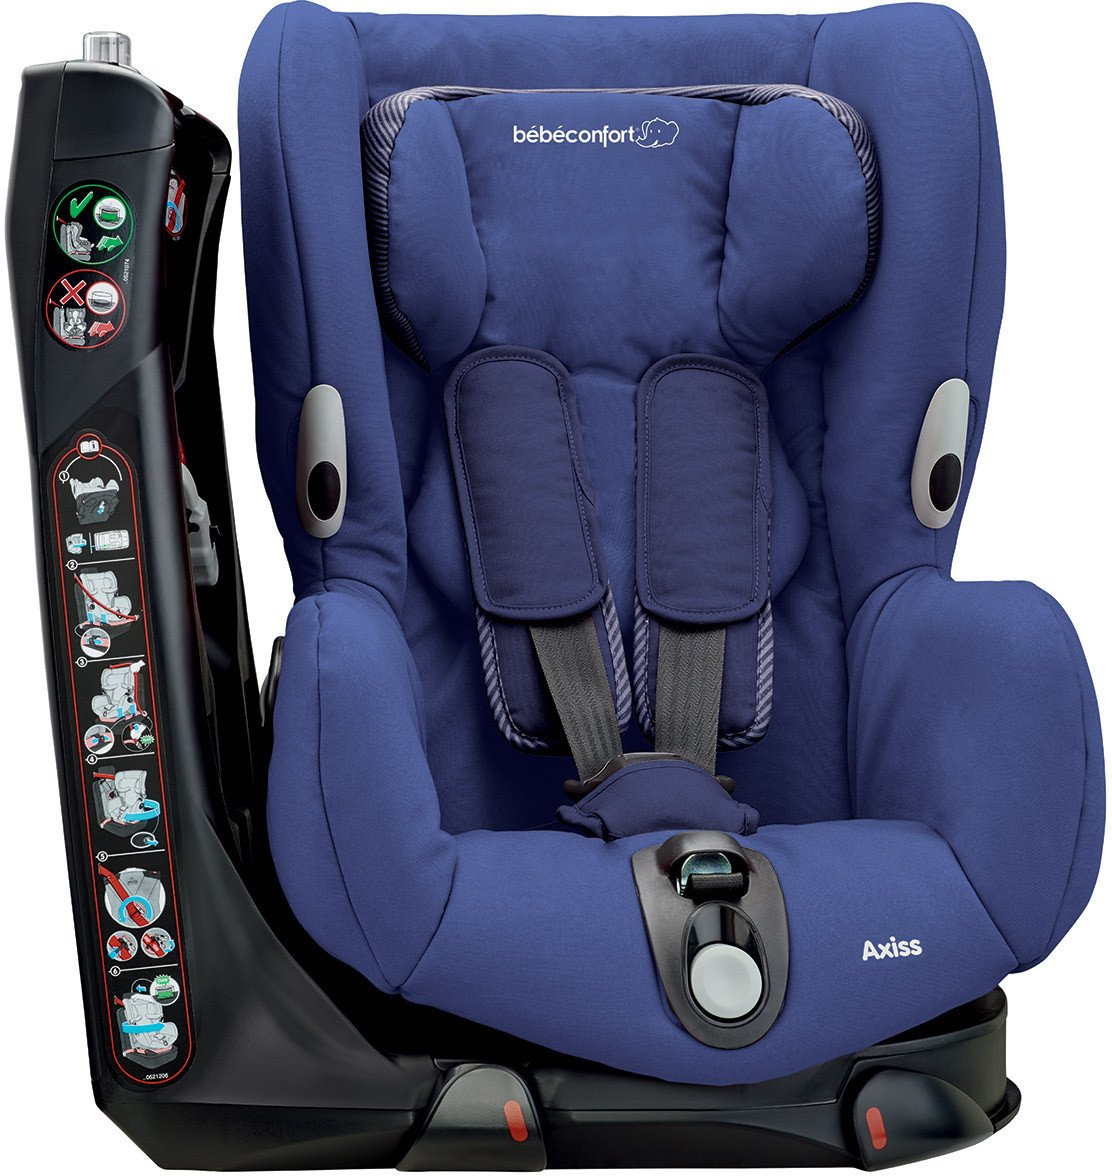 bebe confort oxygen car seat instructions